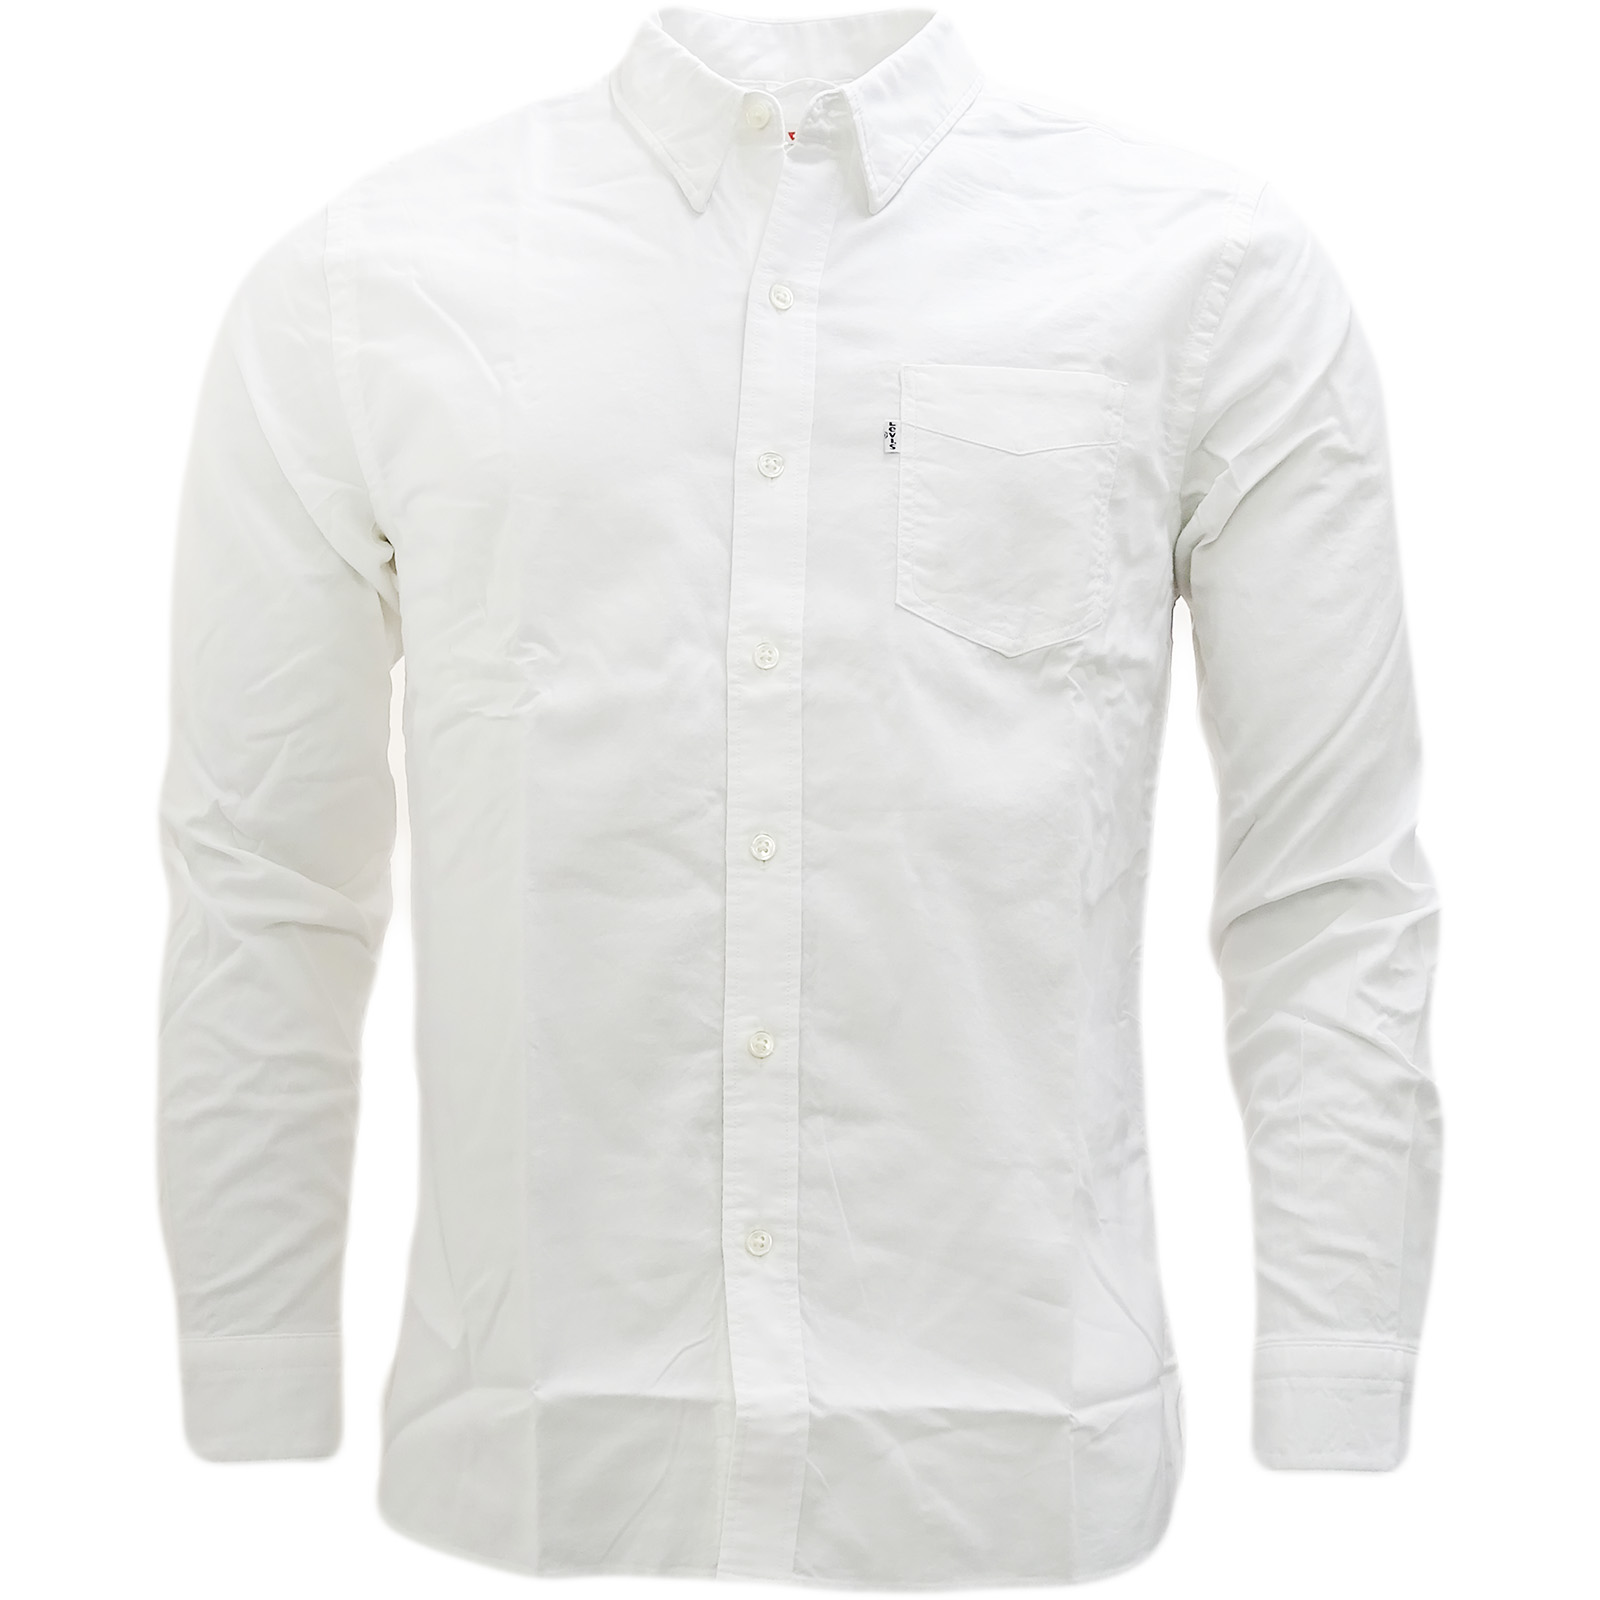 Shirts 36 Cotton Strauss White Oxford Shirt 03 65824 Levi Sentinel Plain aqg00S